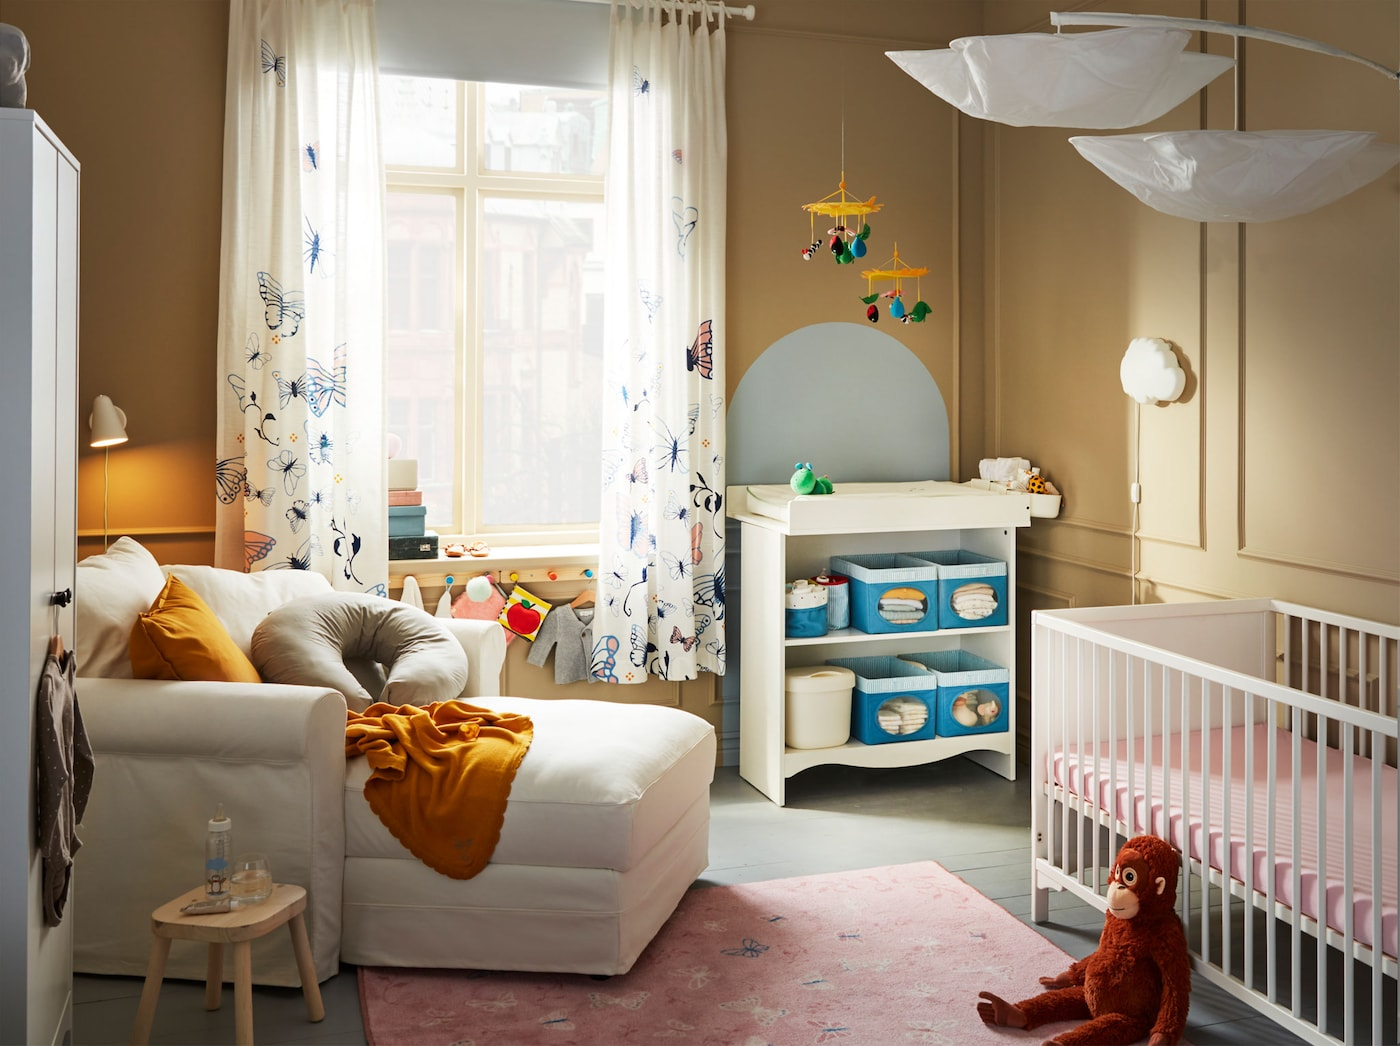 A baby bedroom with a white crib, a white chaise chair, a changing table, and a large window.